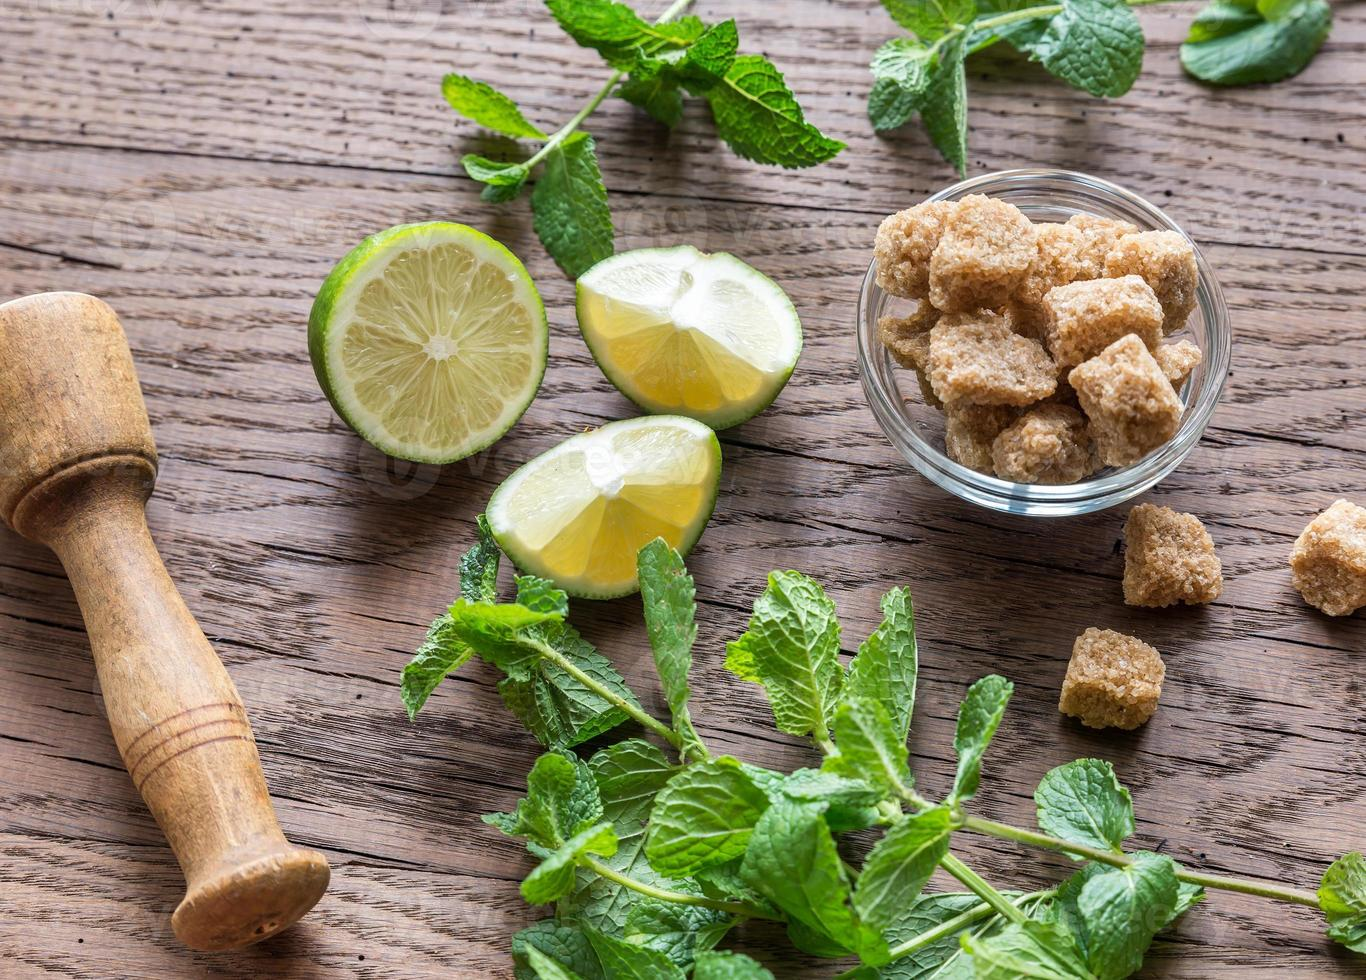 Ingredients for mojito on the wooden background photo